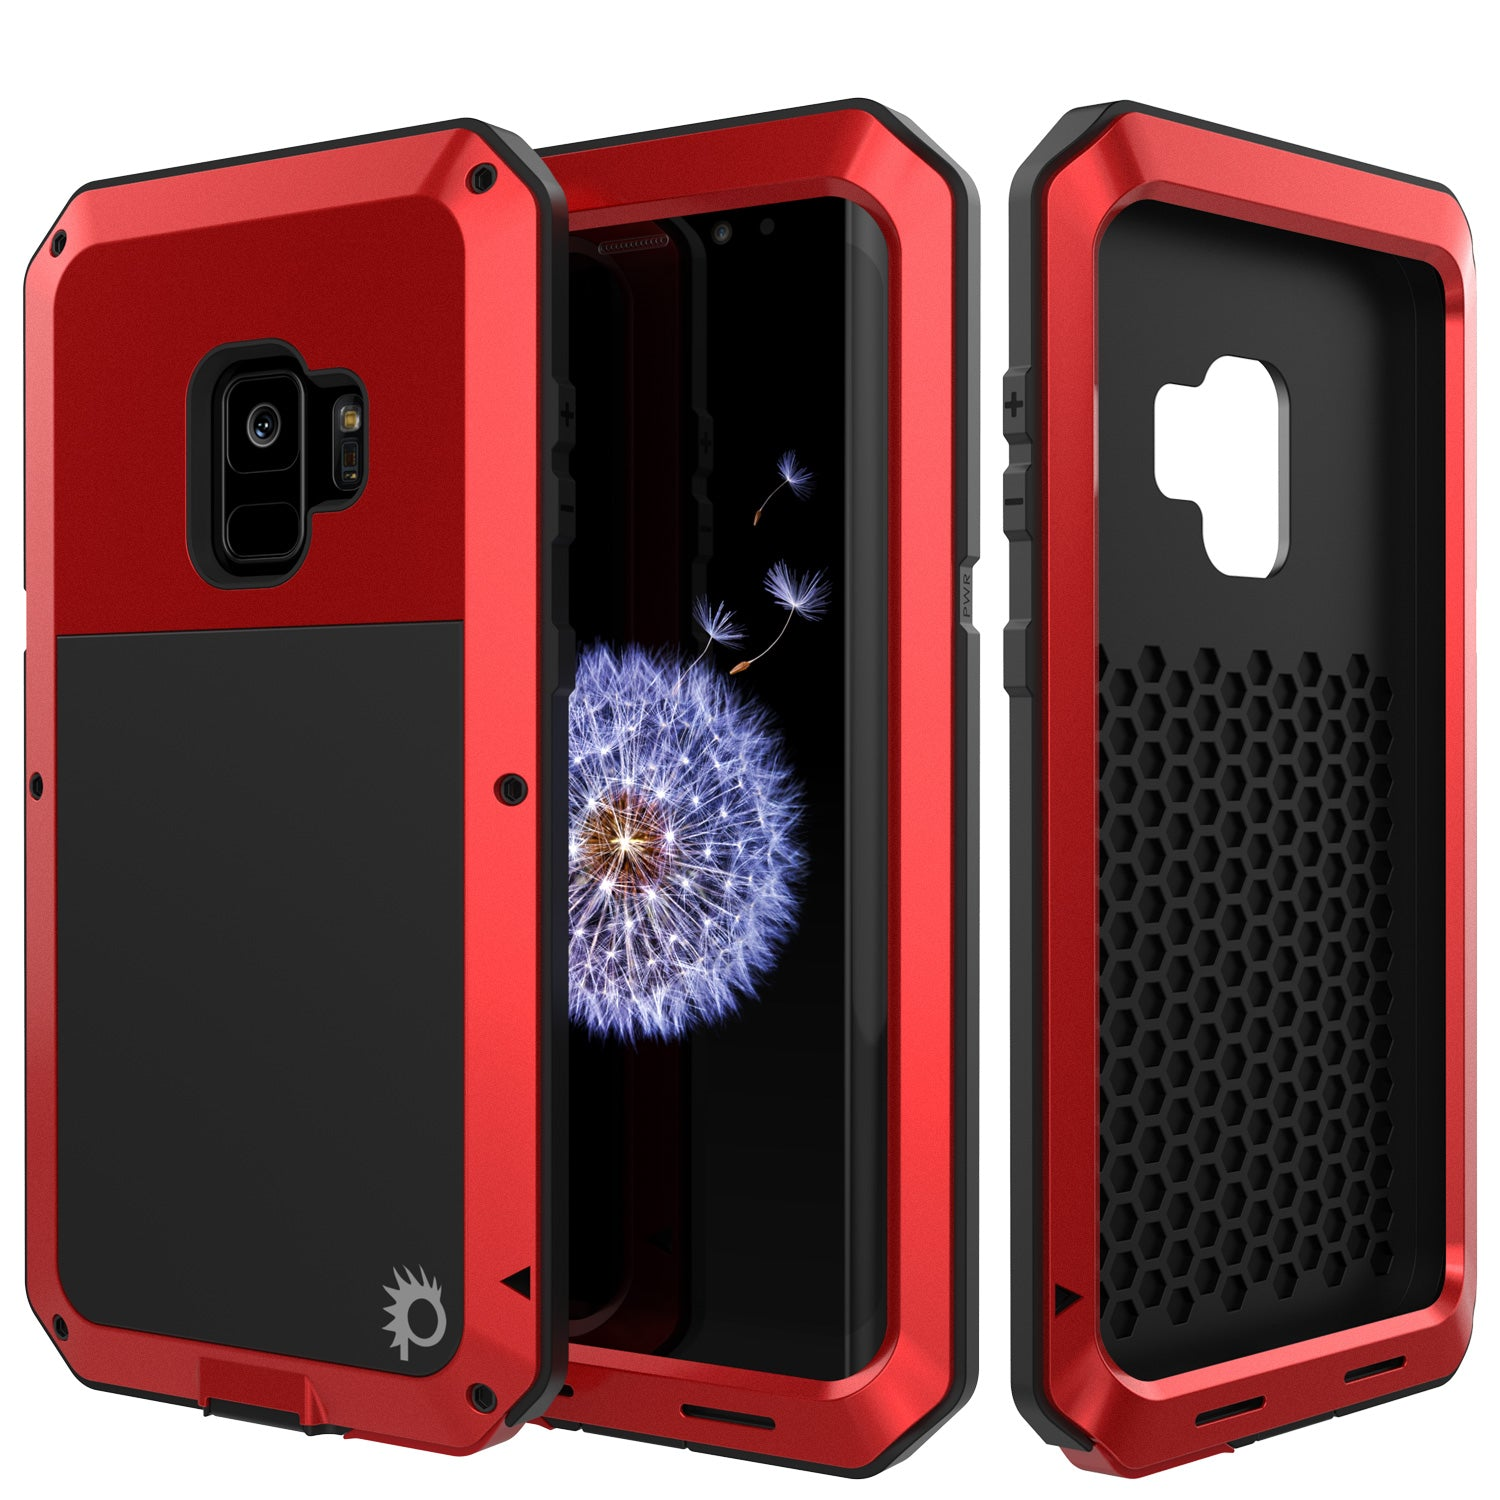 Galaxy S9 Metal Case, Heavy Duty Military Grade Rugged Armor Cover [Red]